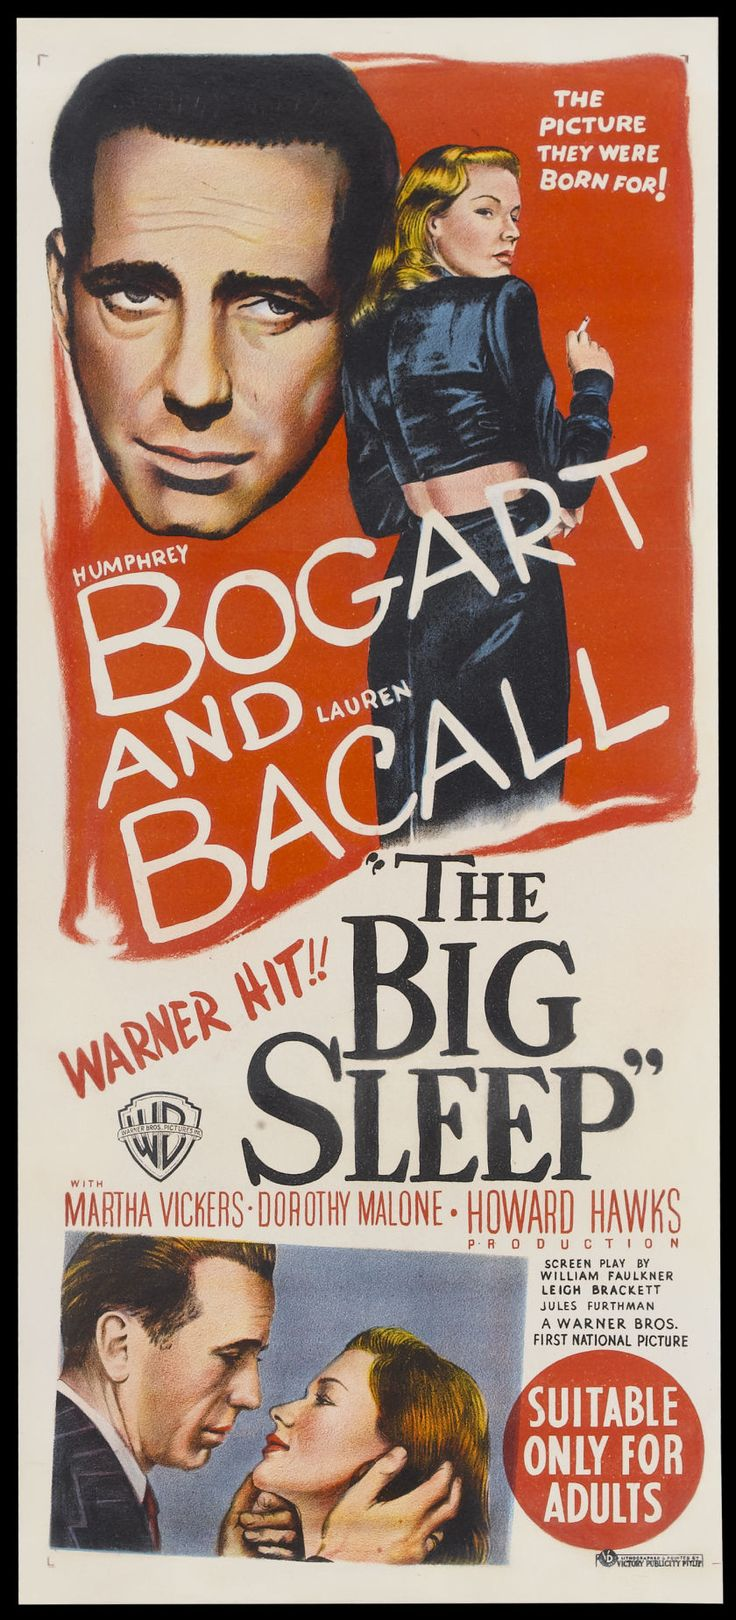 The Big Sleep | Australian Daybill, 1946 - El sueño eterno